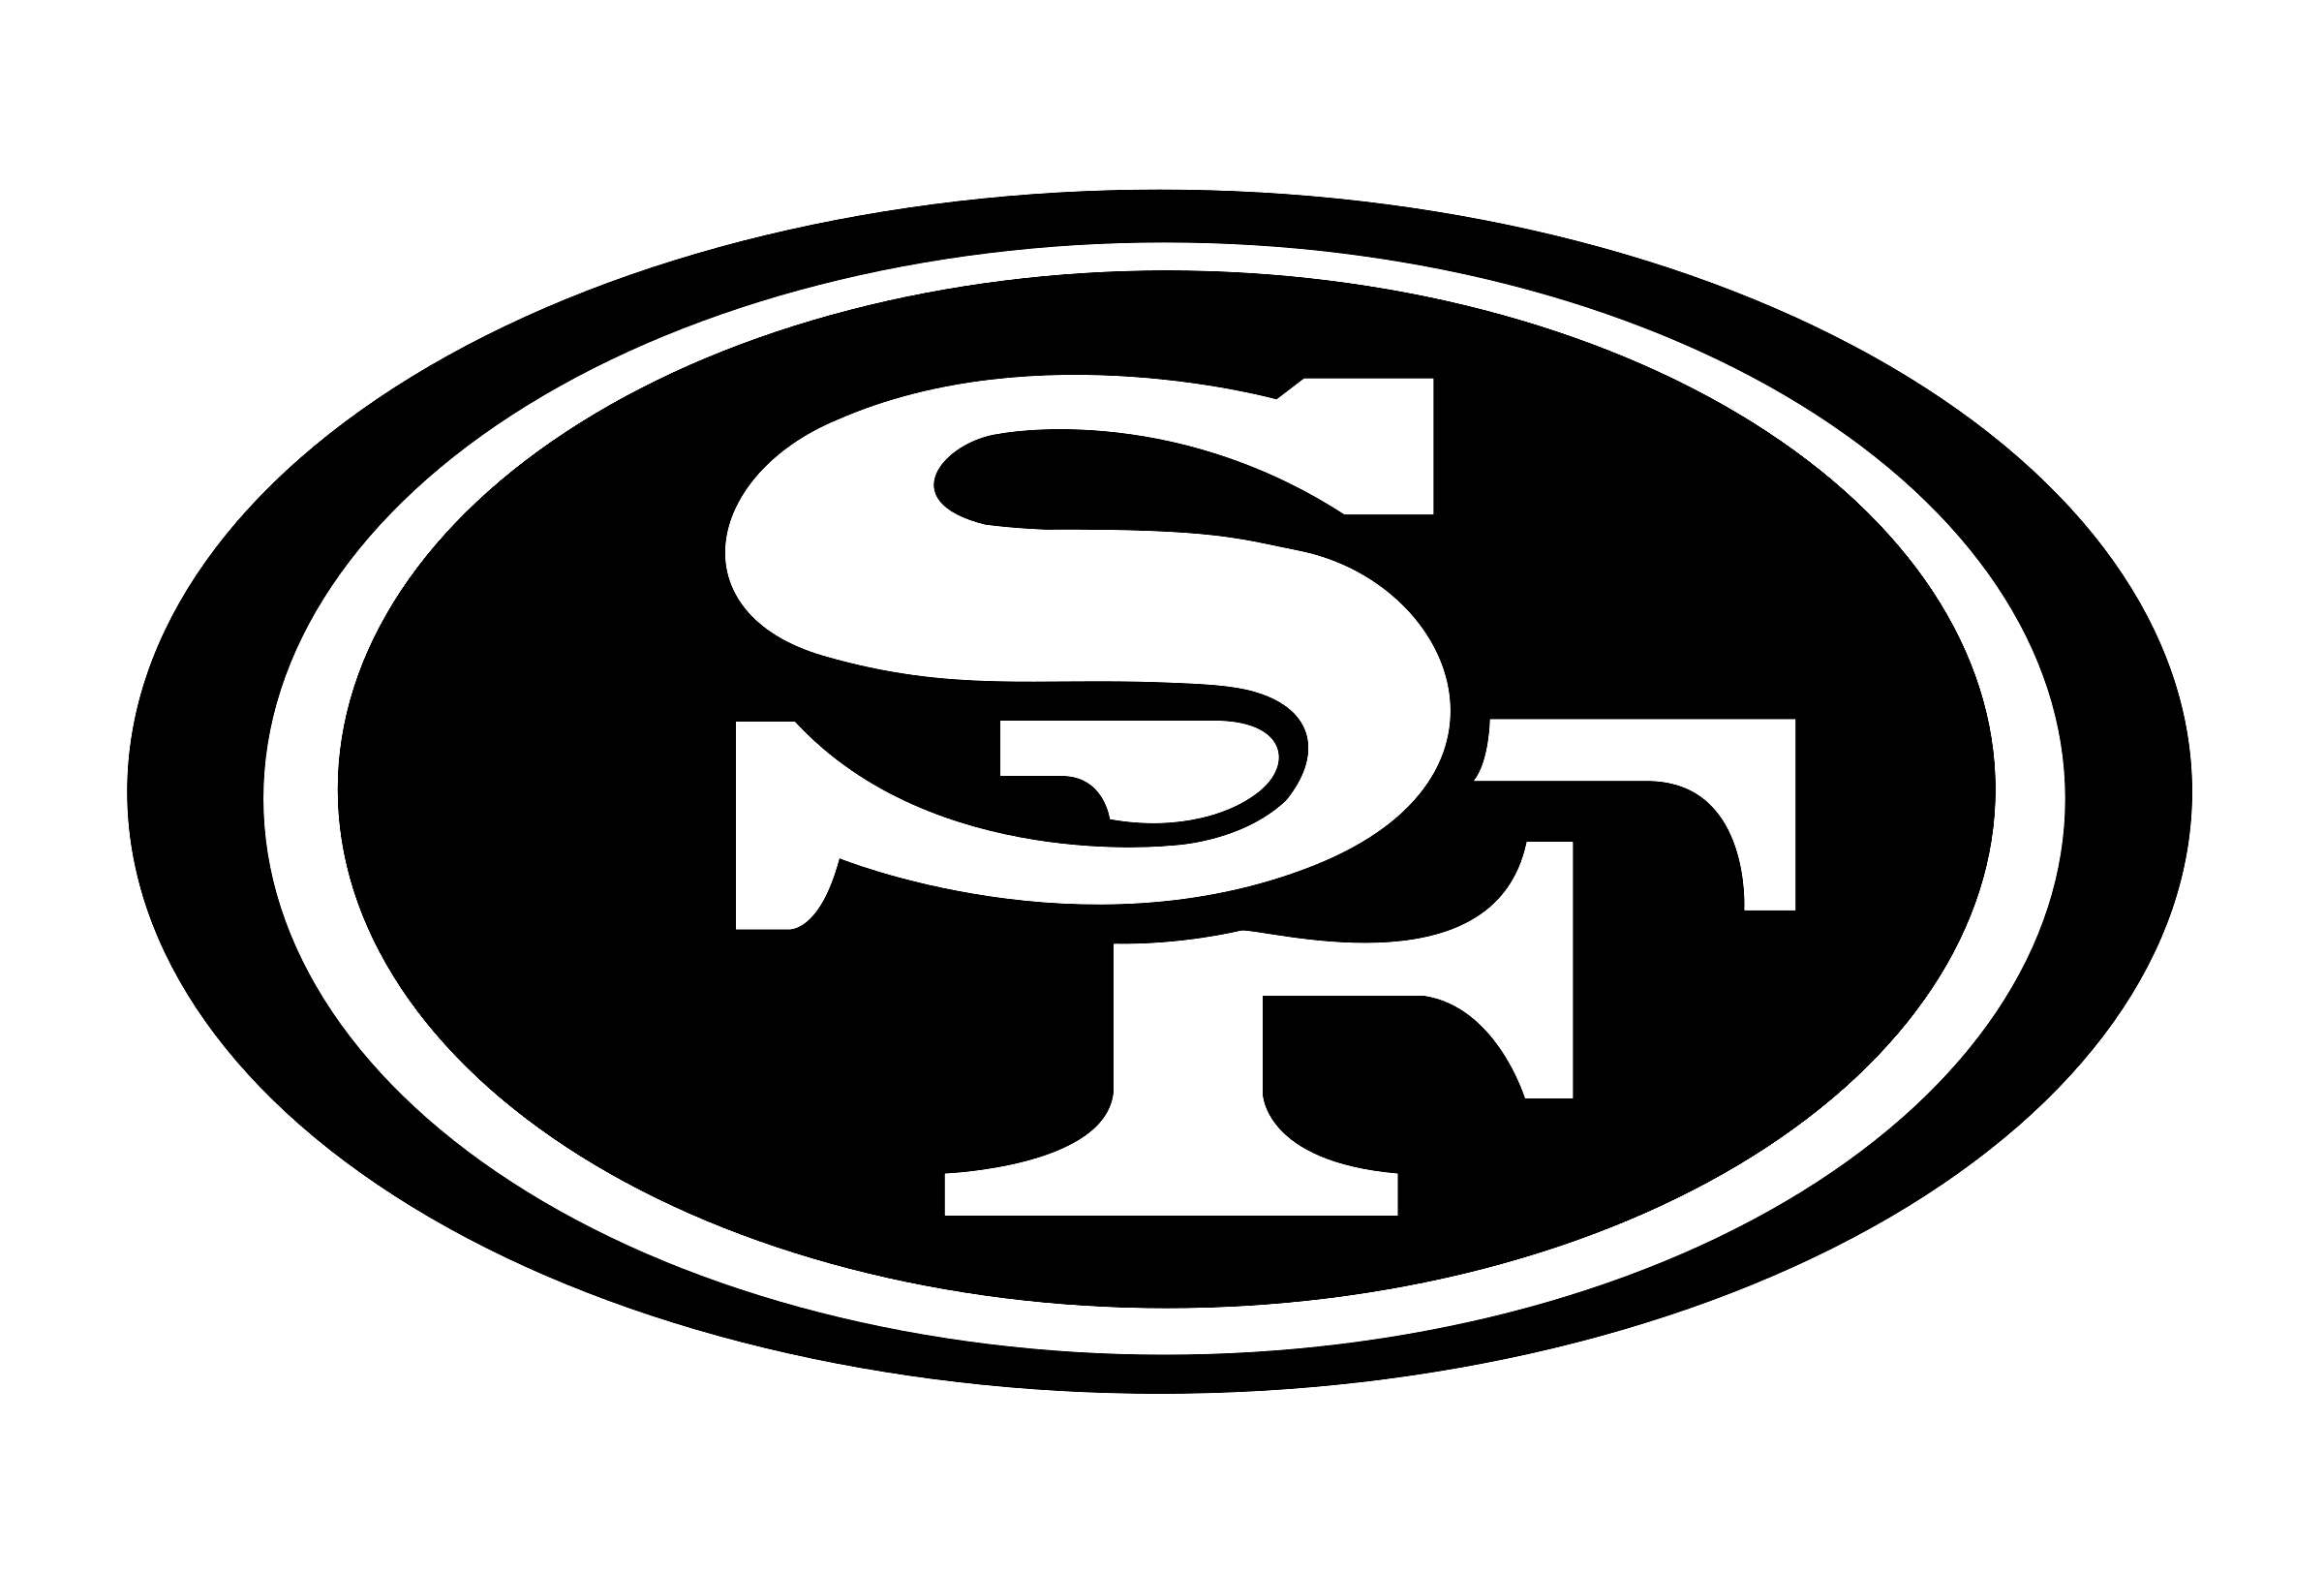 San Francisco 49ers NFL Seattle Seahawks Pittsburgh Steelers.